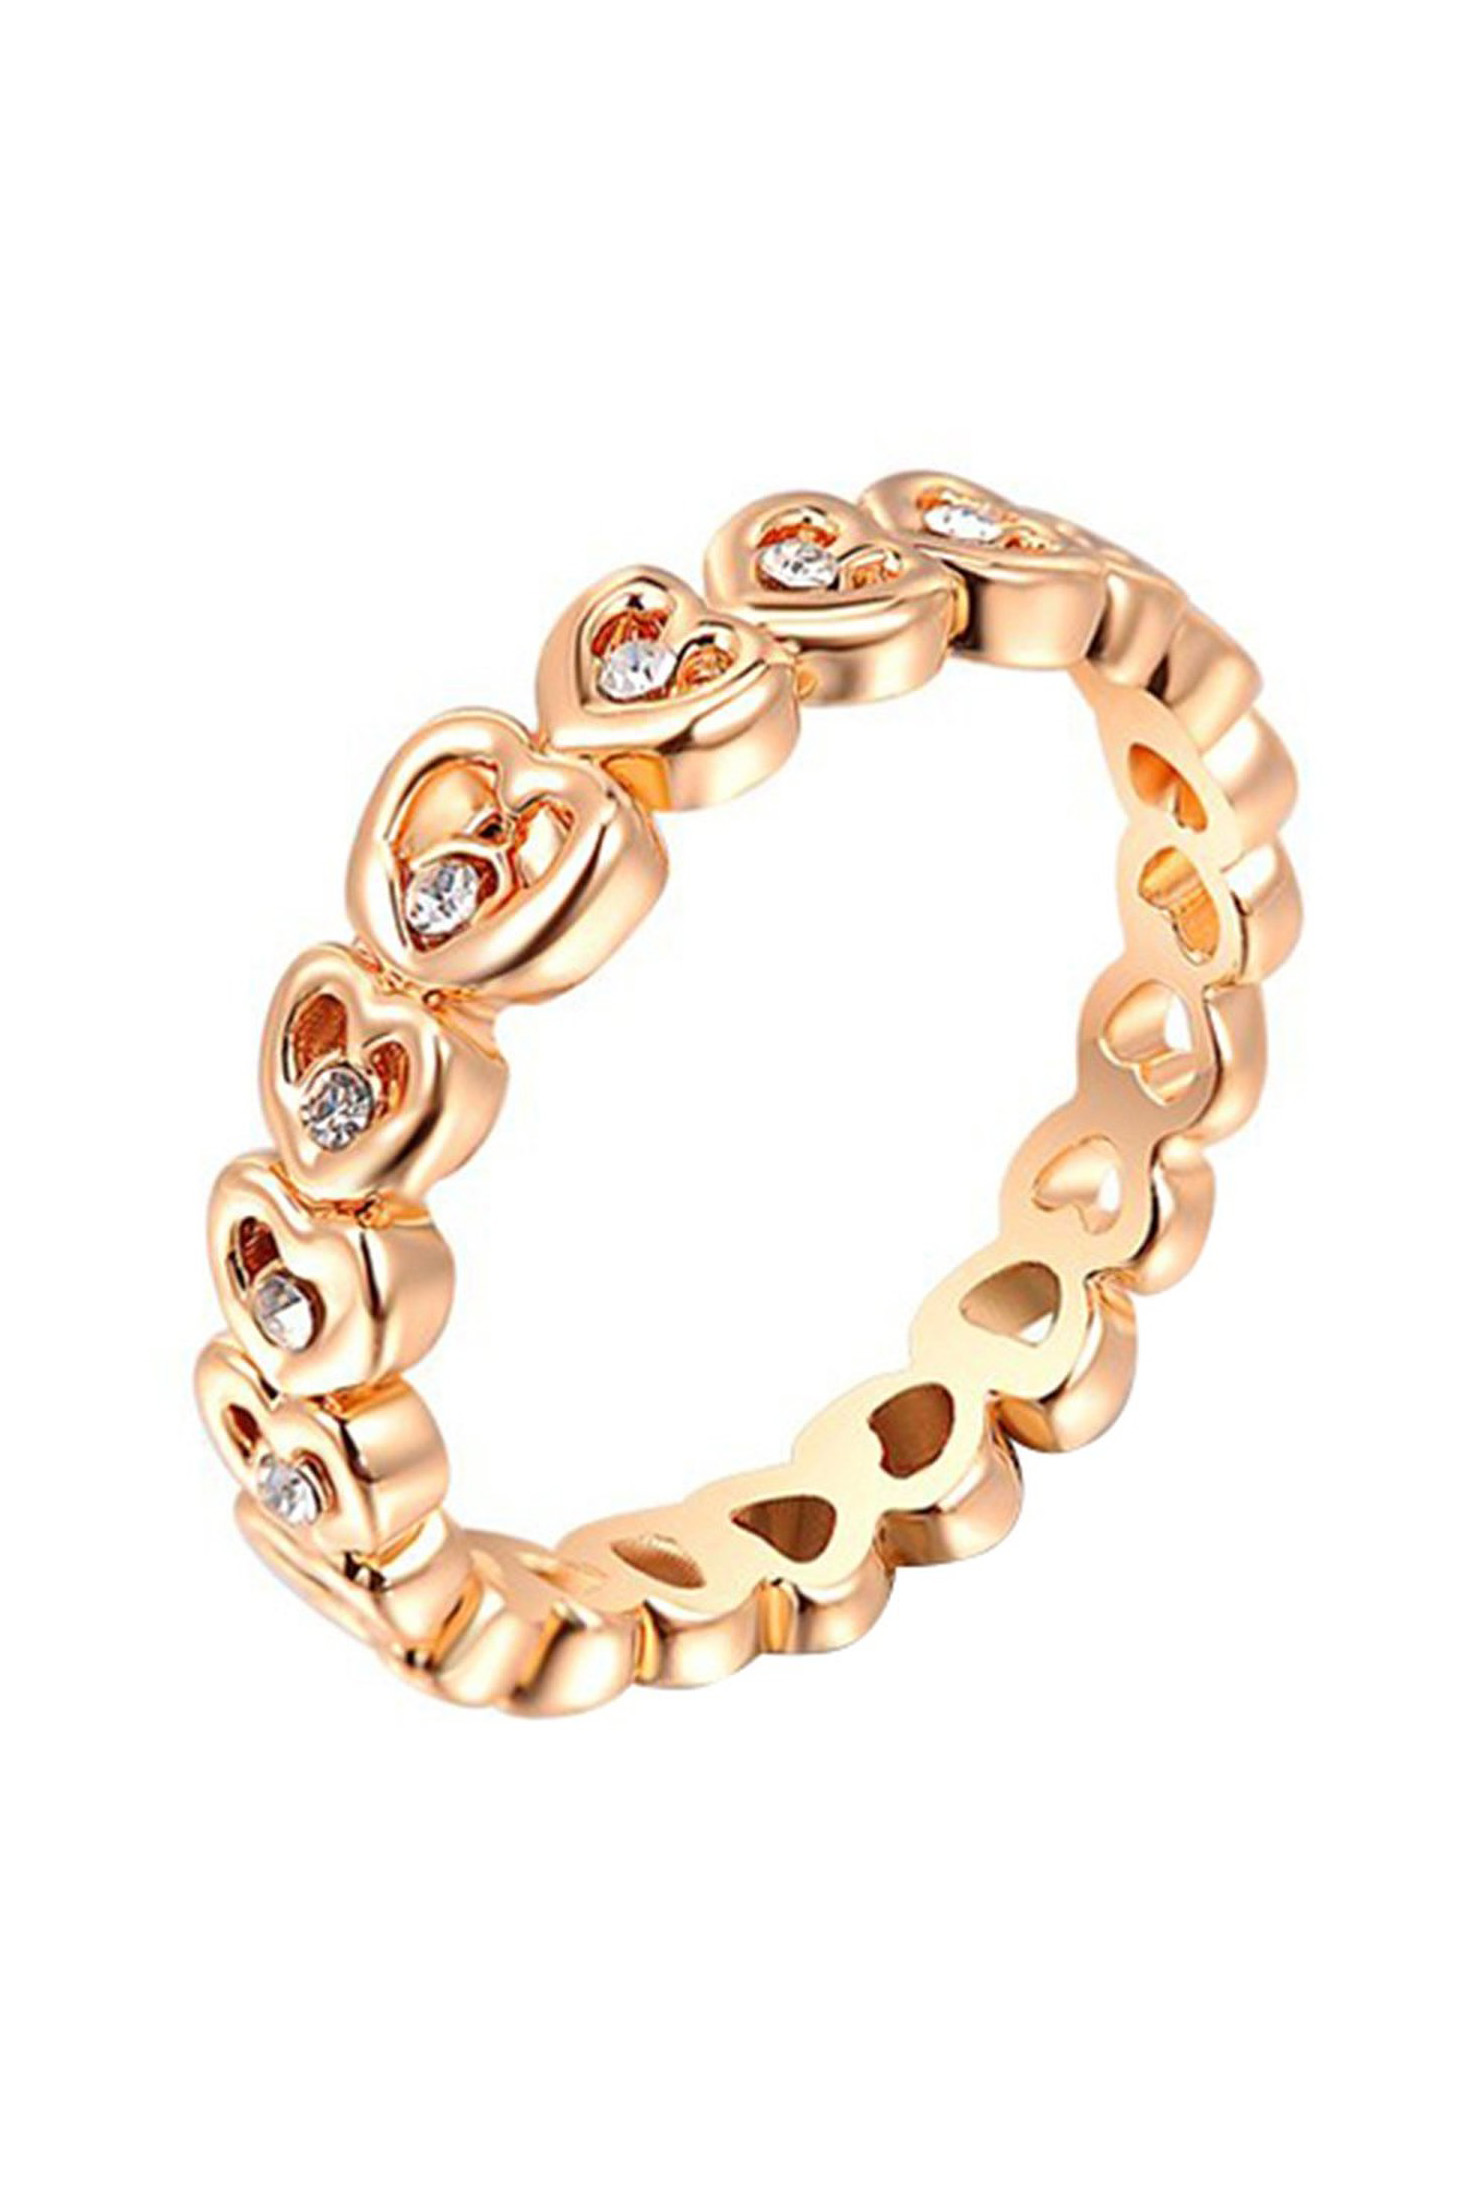 Gold Plated Heart Ring/Thumb Ring with Zircon Rhinestone